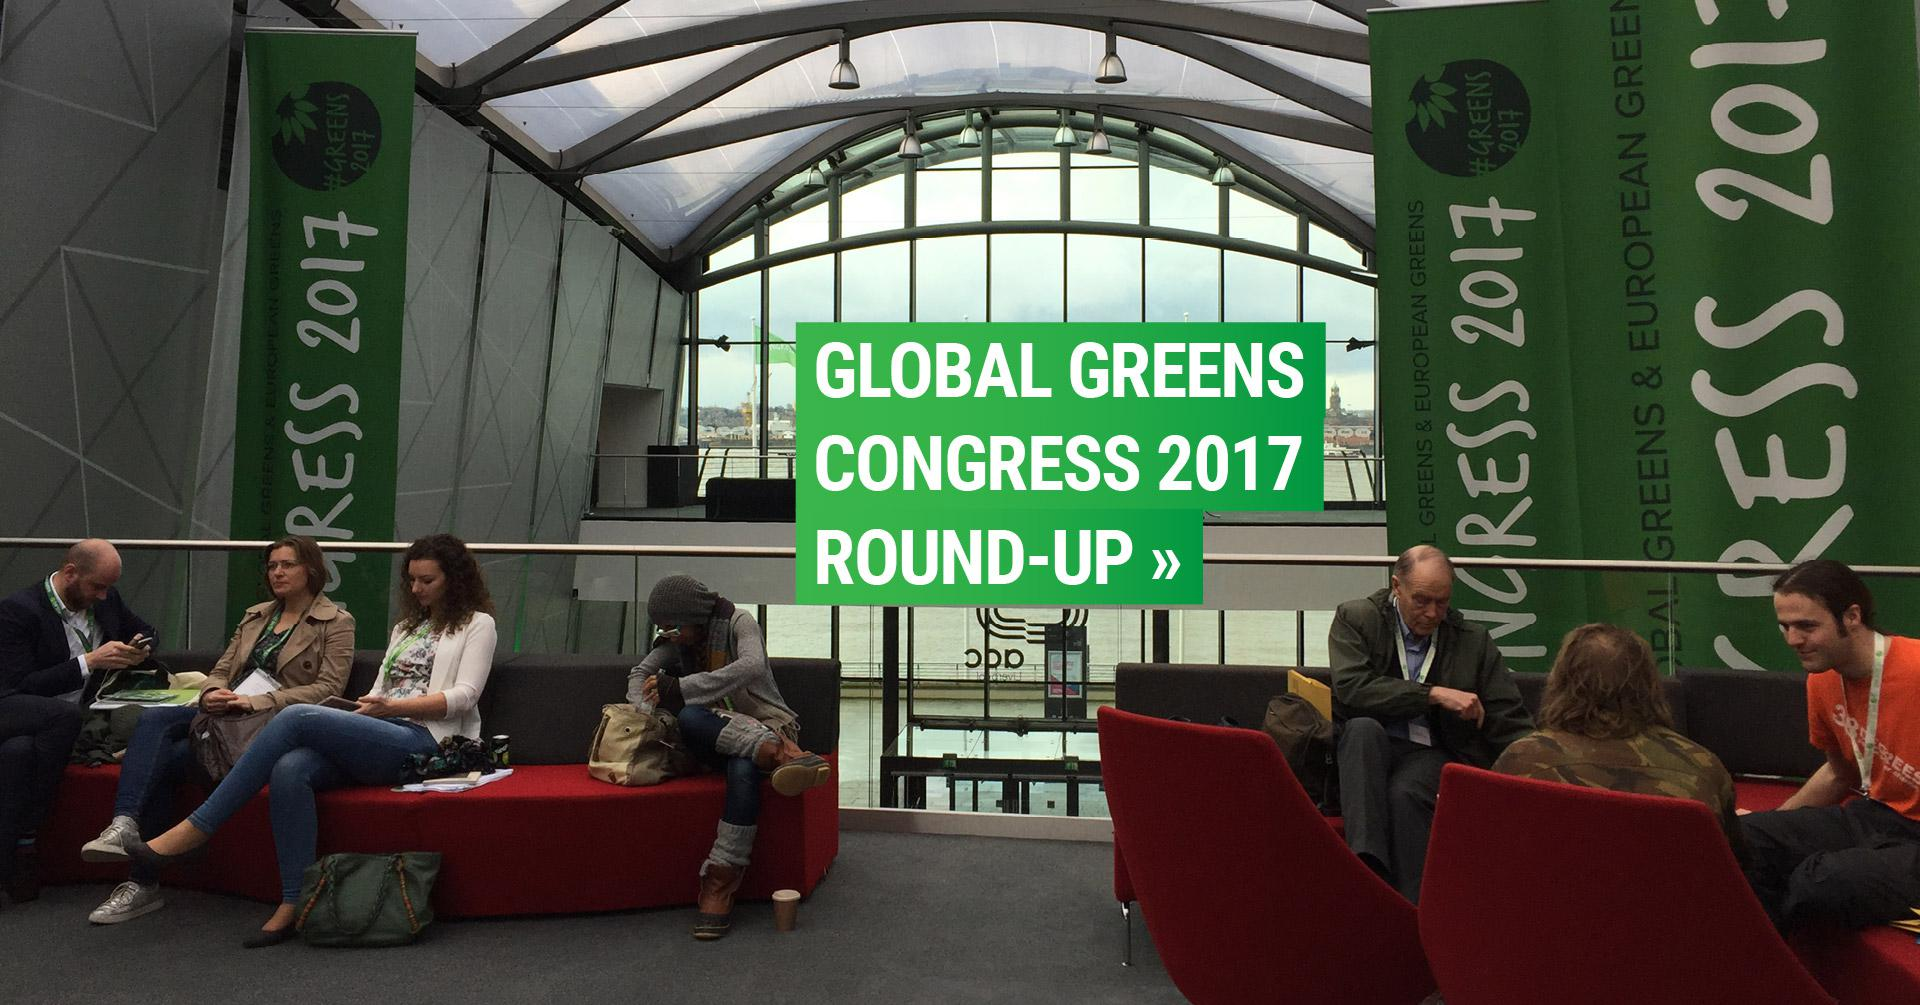 Global Greens Congress 2017 roundup